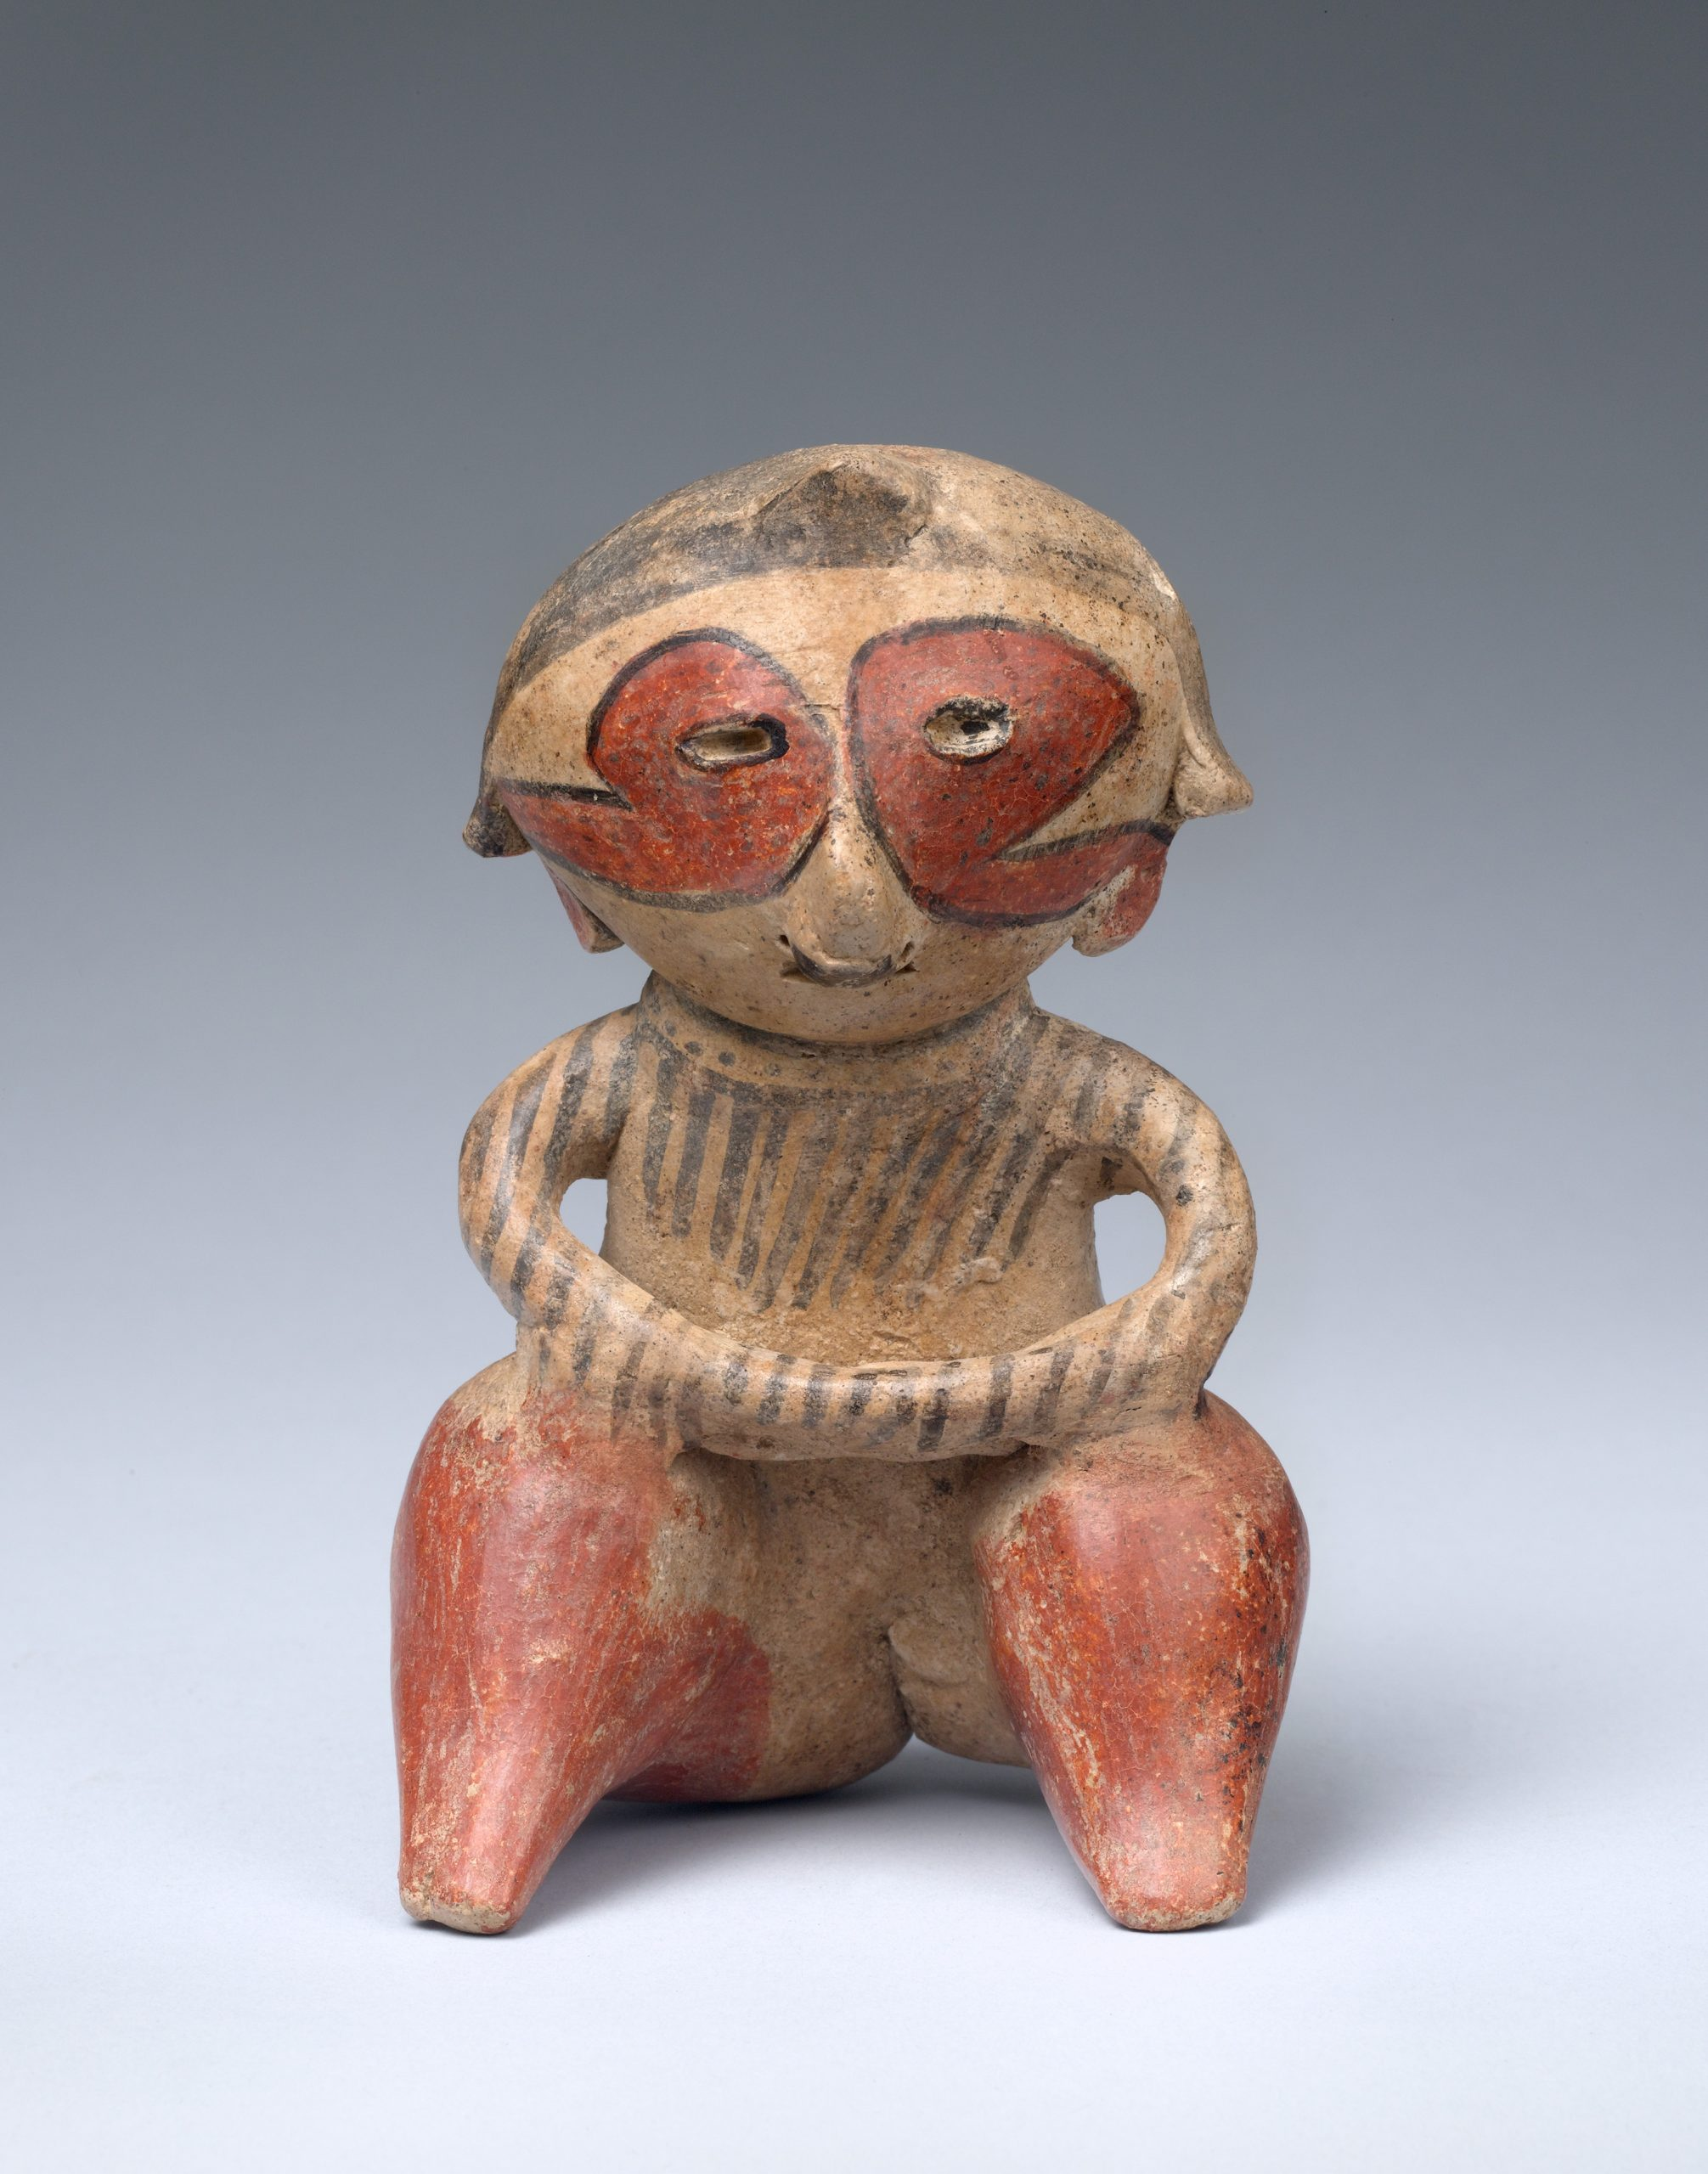 Seated ceramic figure with hands rested on knees, and face and body tattoos in red and black ink.